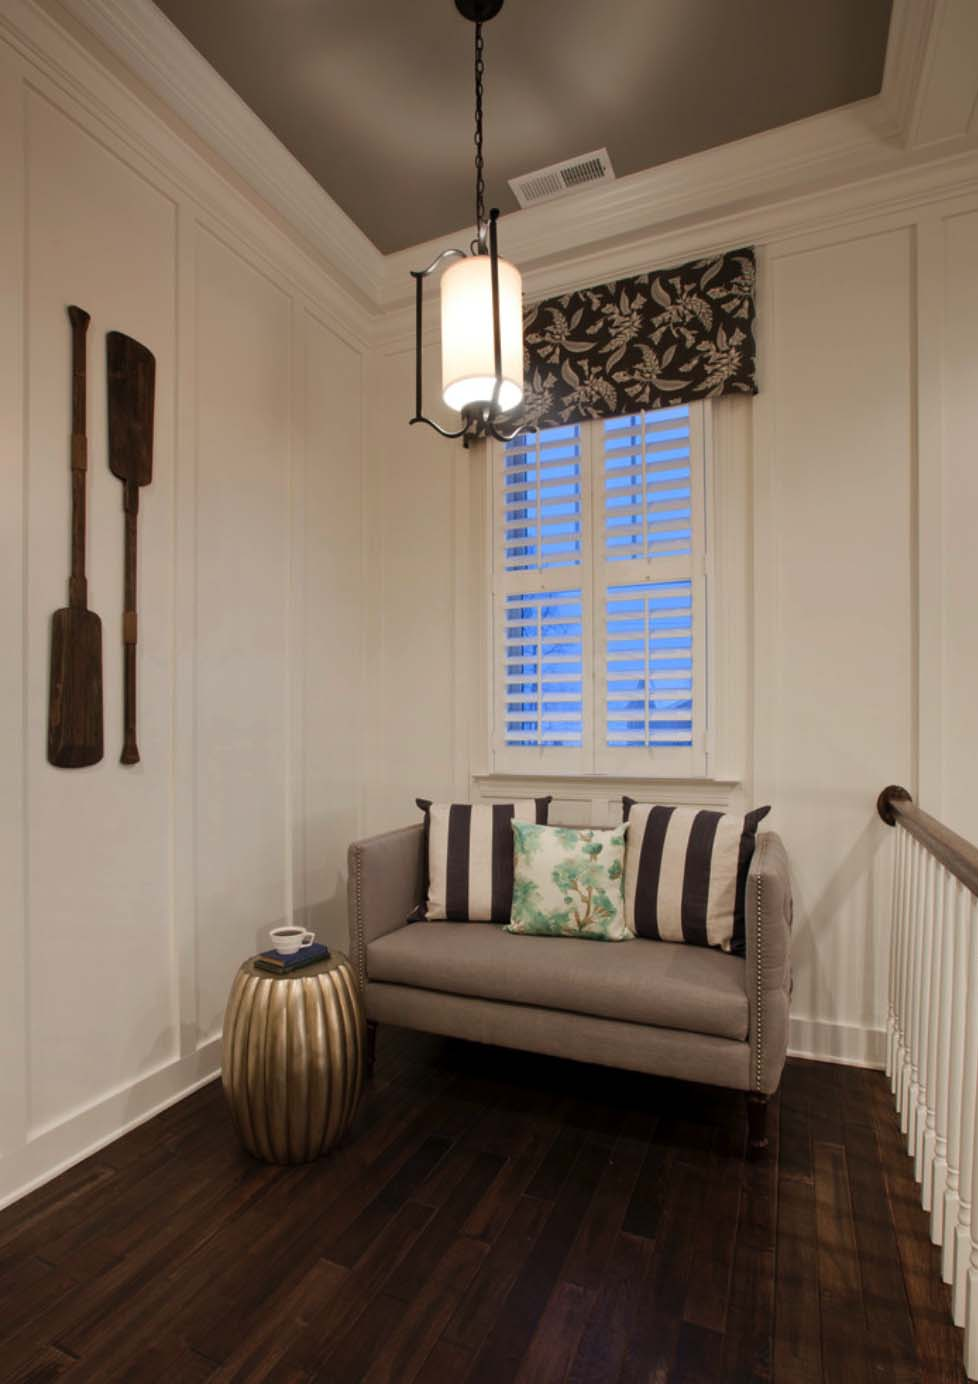 maison-de-style-traditionnel-mary-cook-associates-15-1-kindesign